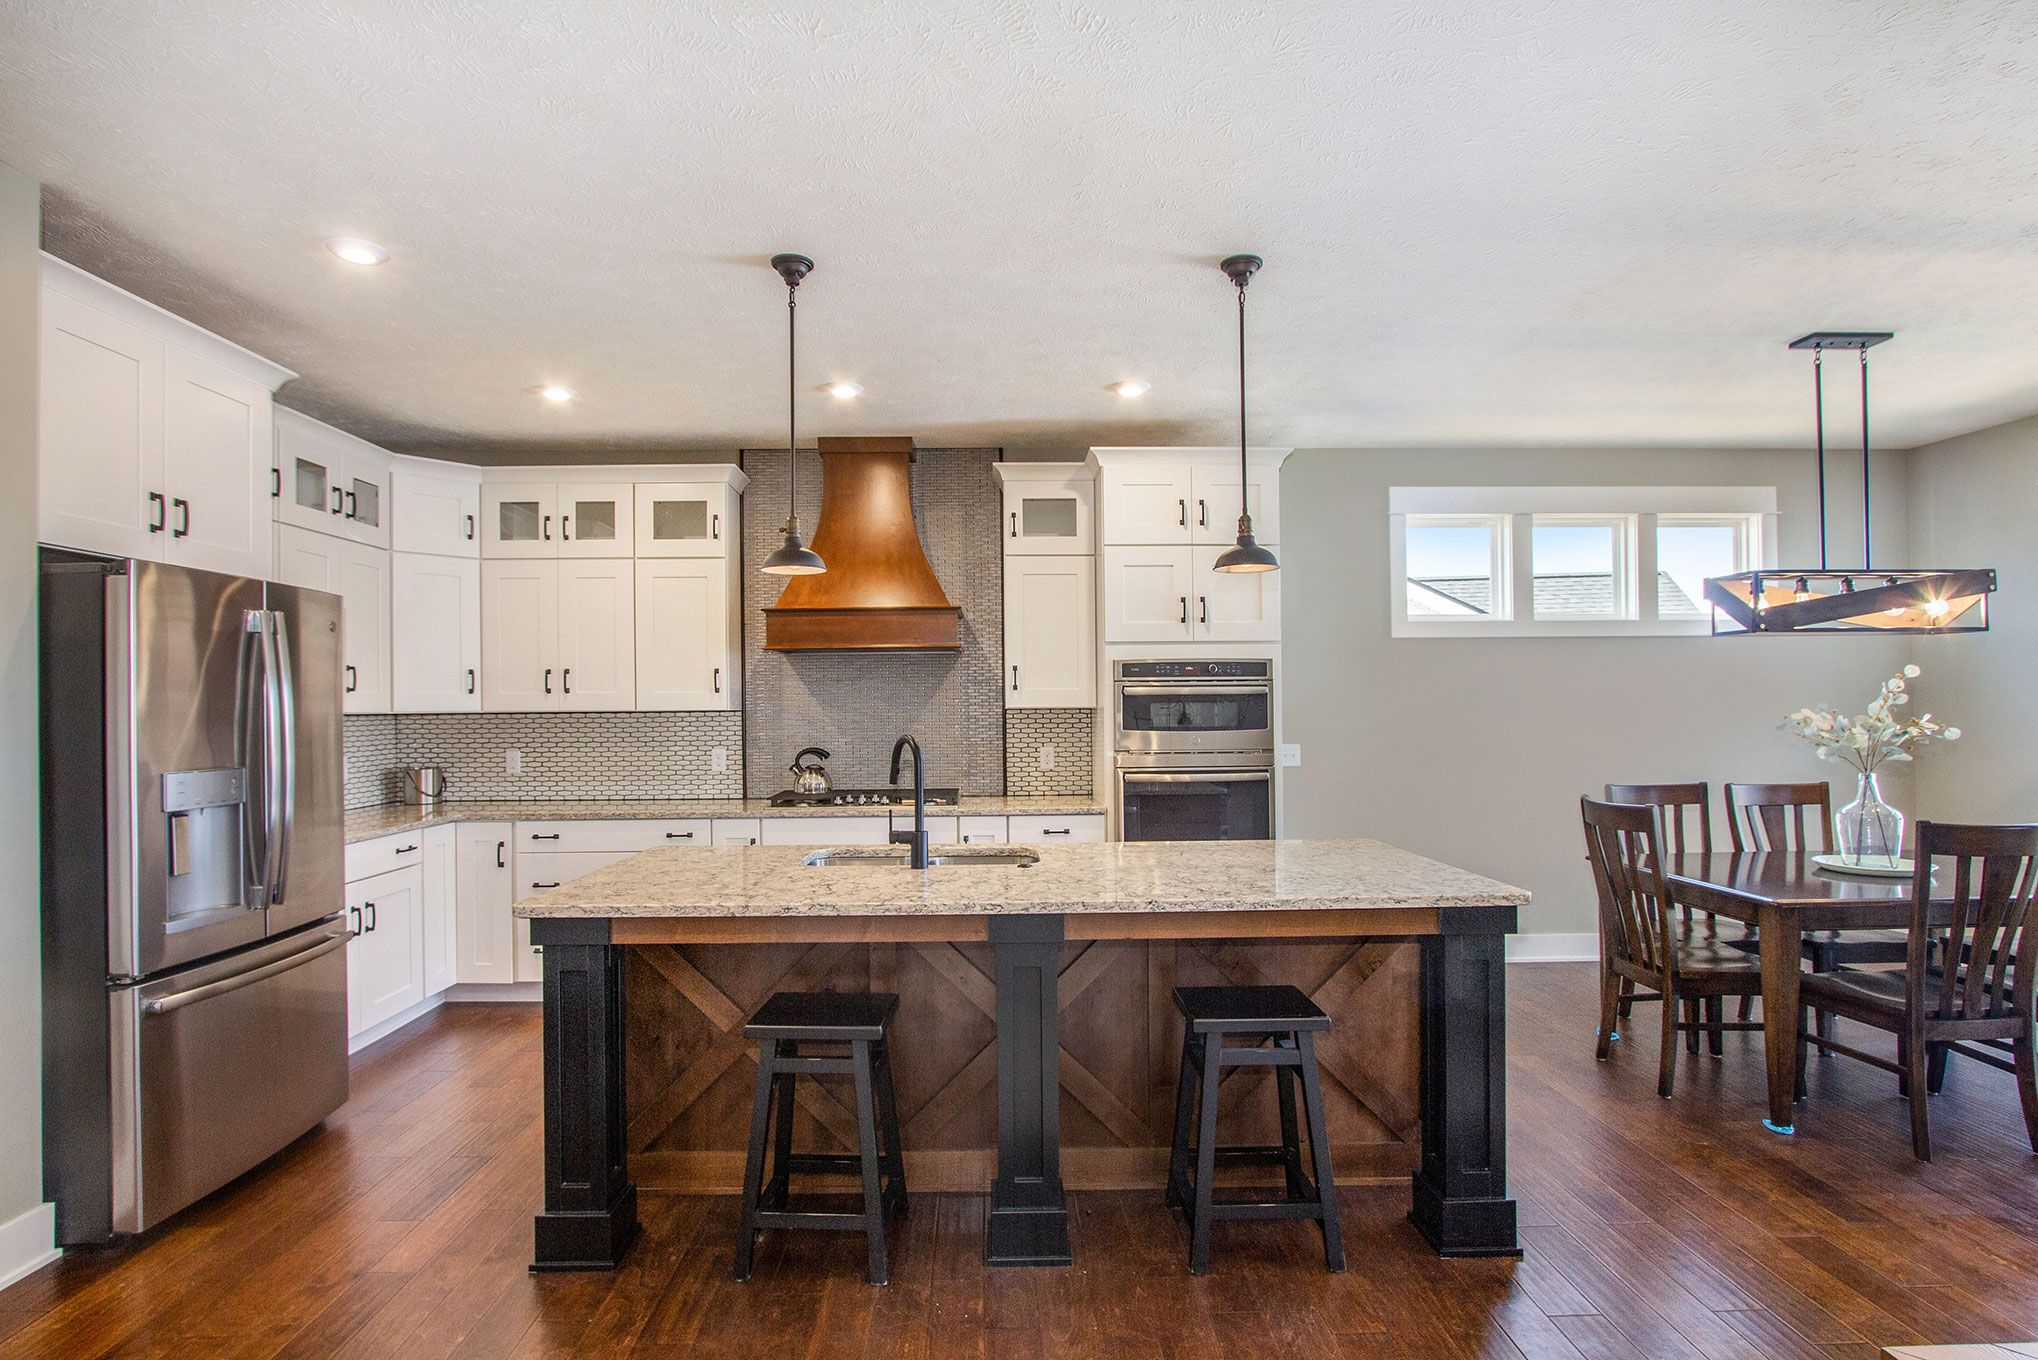 Kitchen featured in The Willow ll Americana By Eastbrook Homes Inc. in Lansing, MI